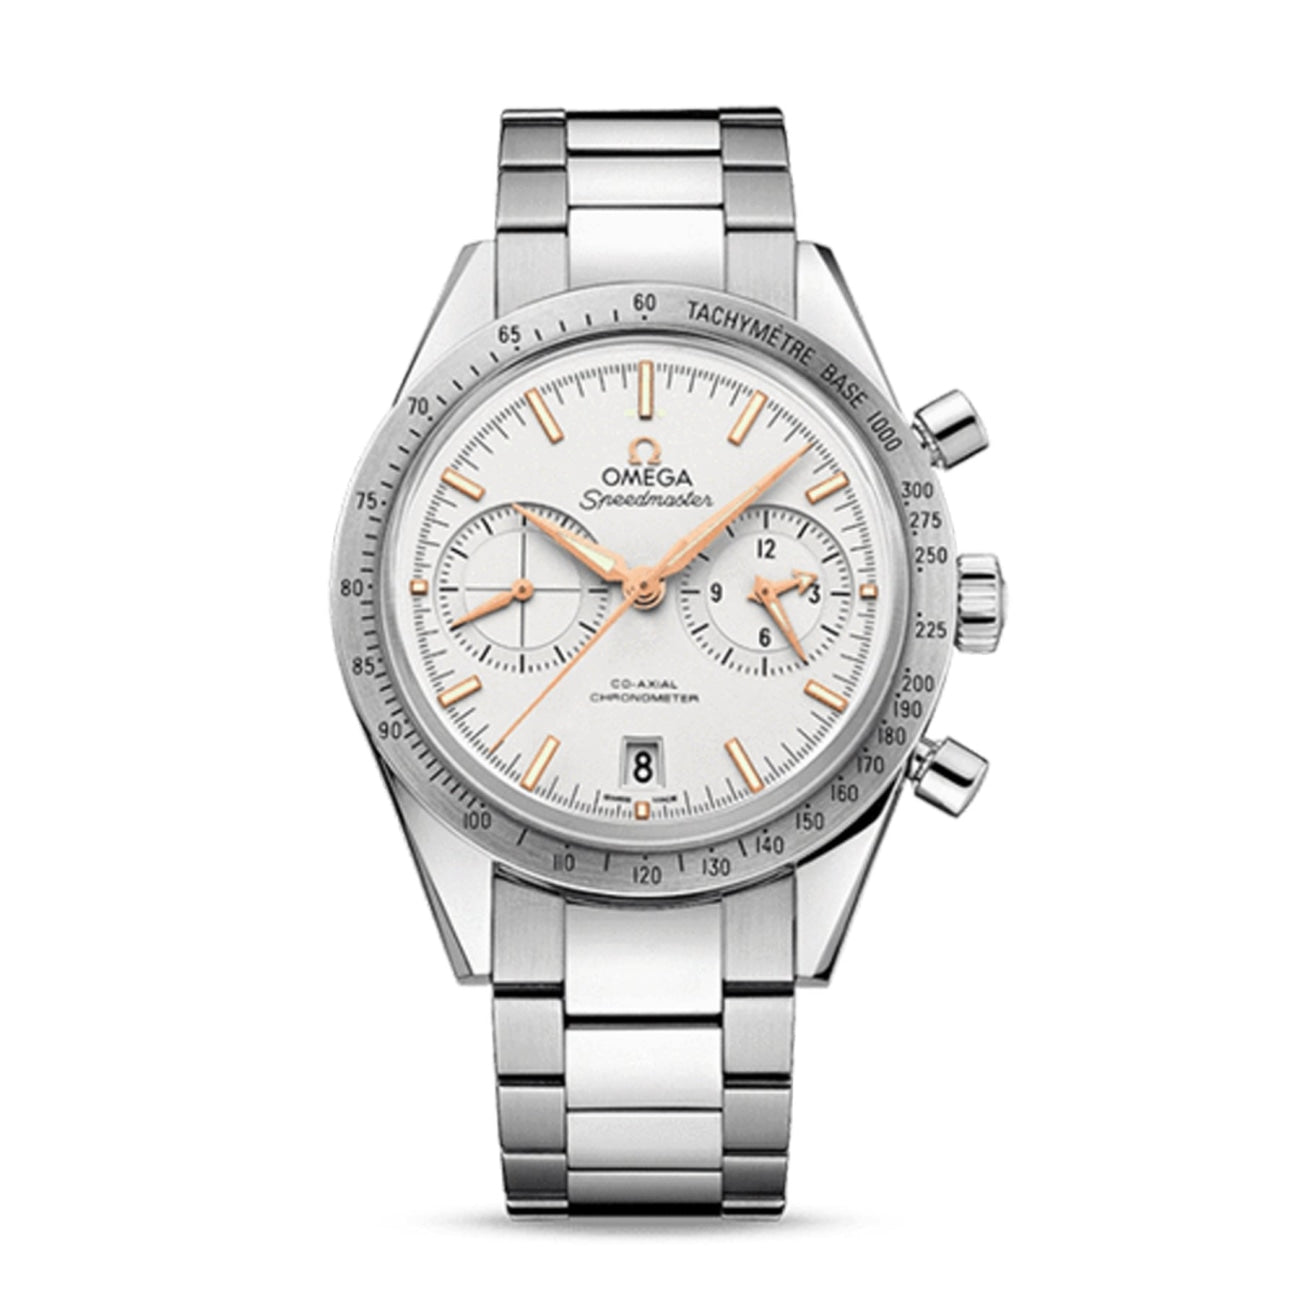 Omega Watches - Speedmaster Speedmaster '57 Omega Co-Axial Chronograph 41.5 MM | Manfredi Jewels